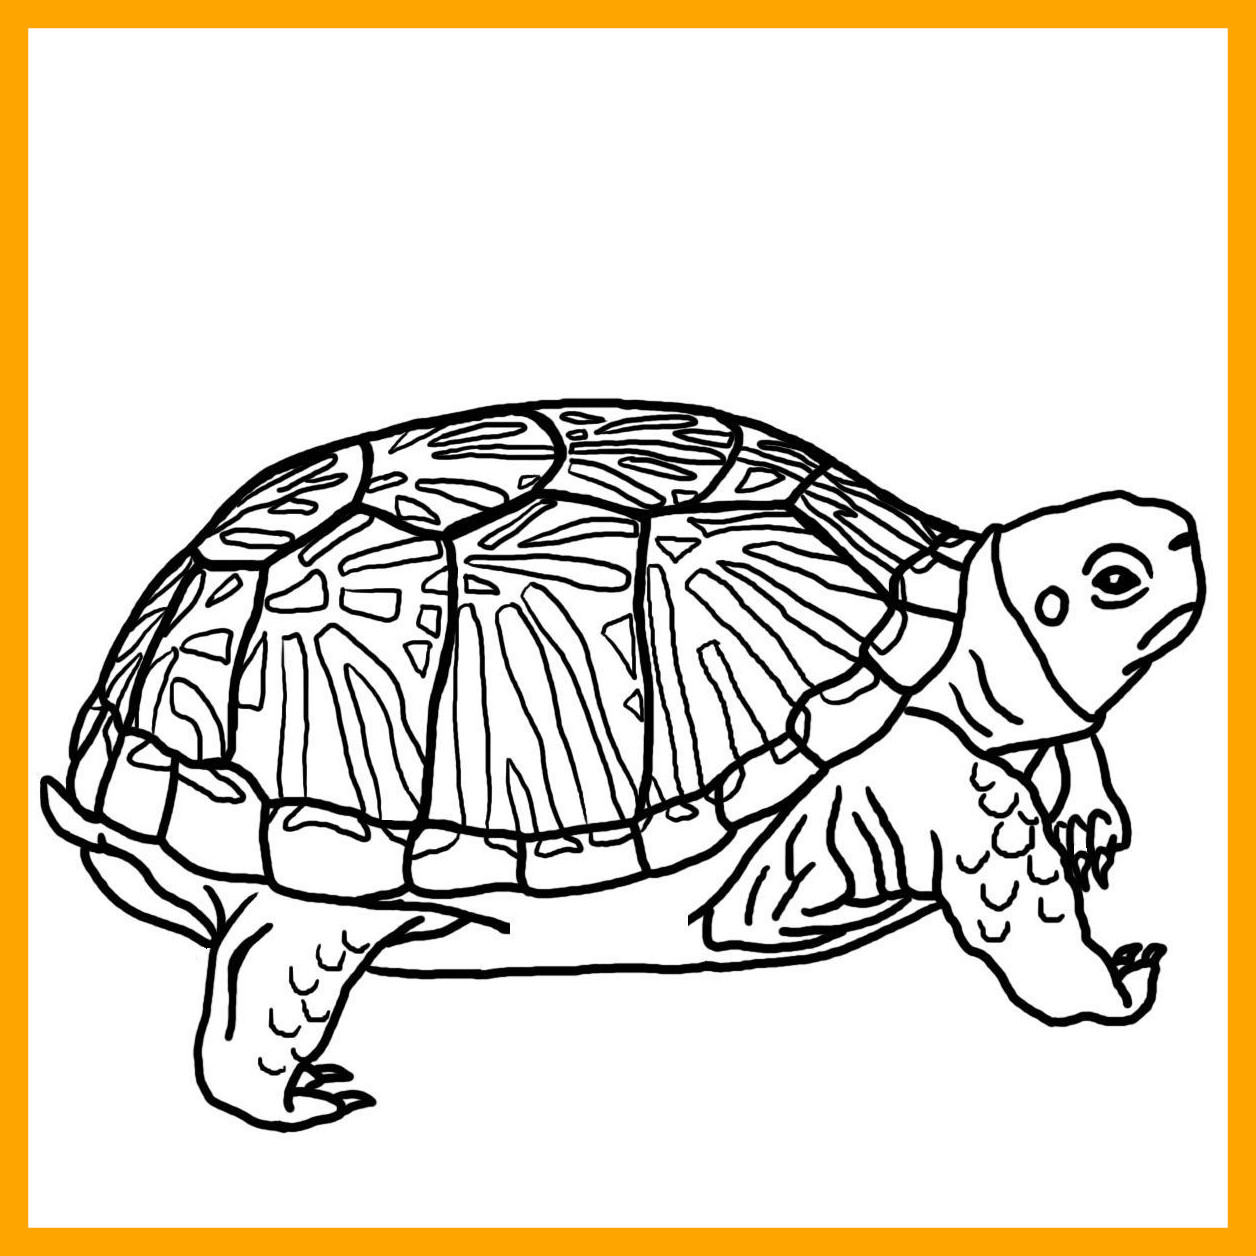 turtle shell pattern drawing at getdrawings com free for personal